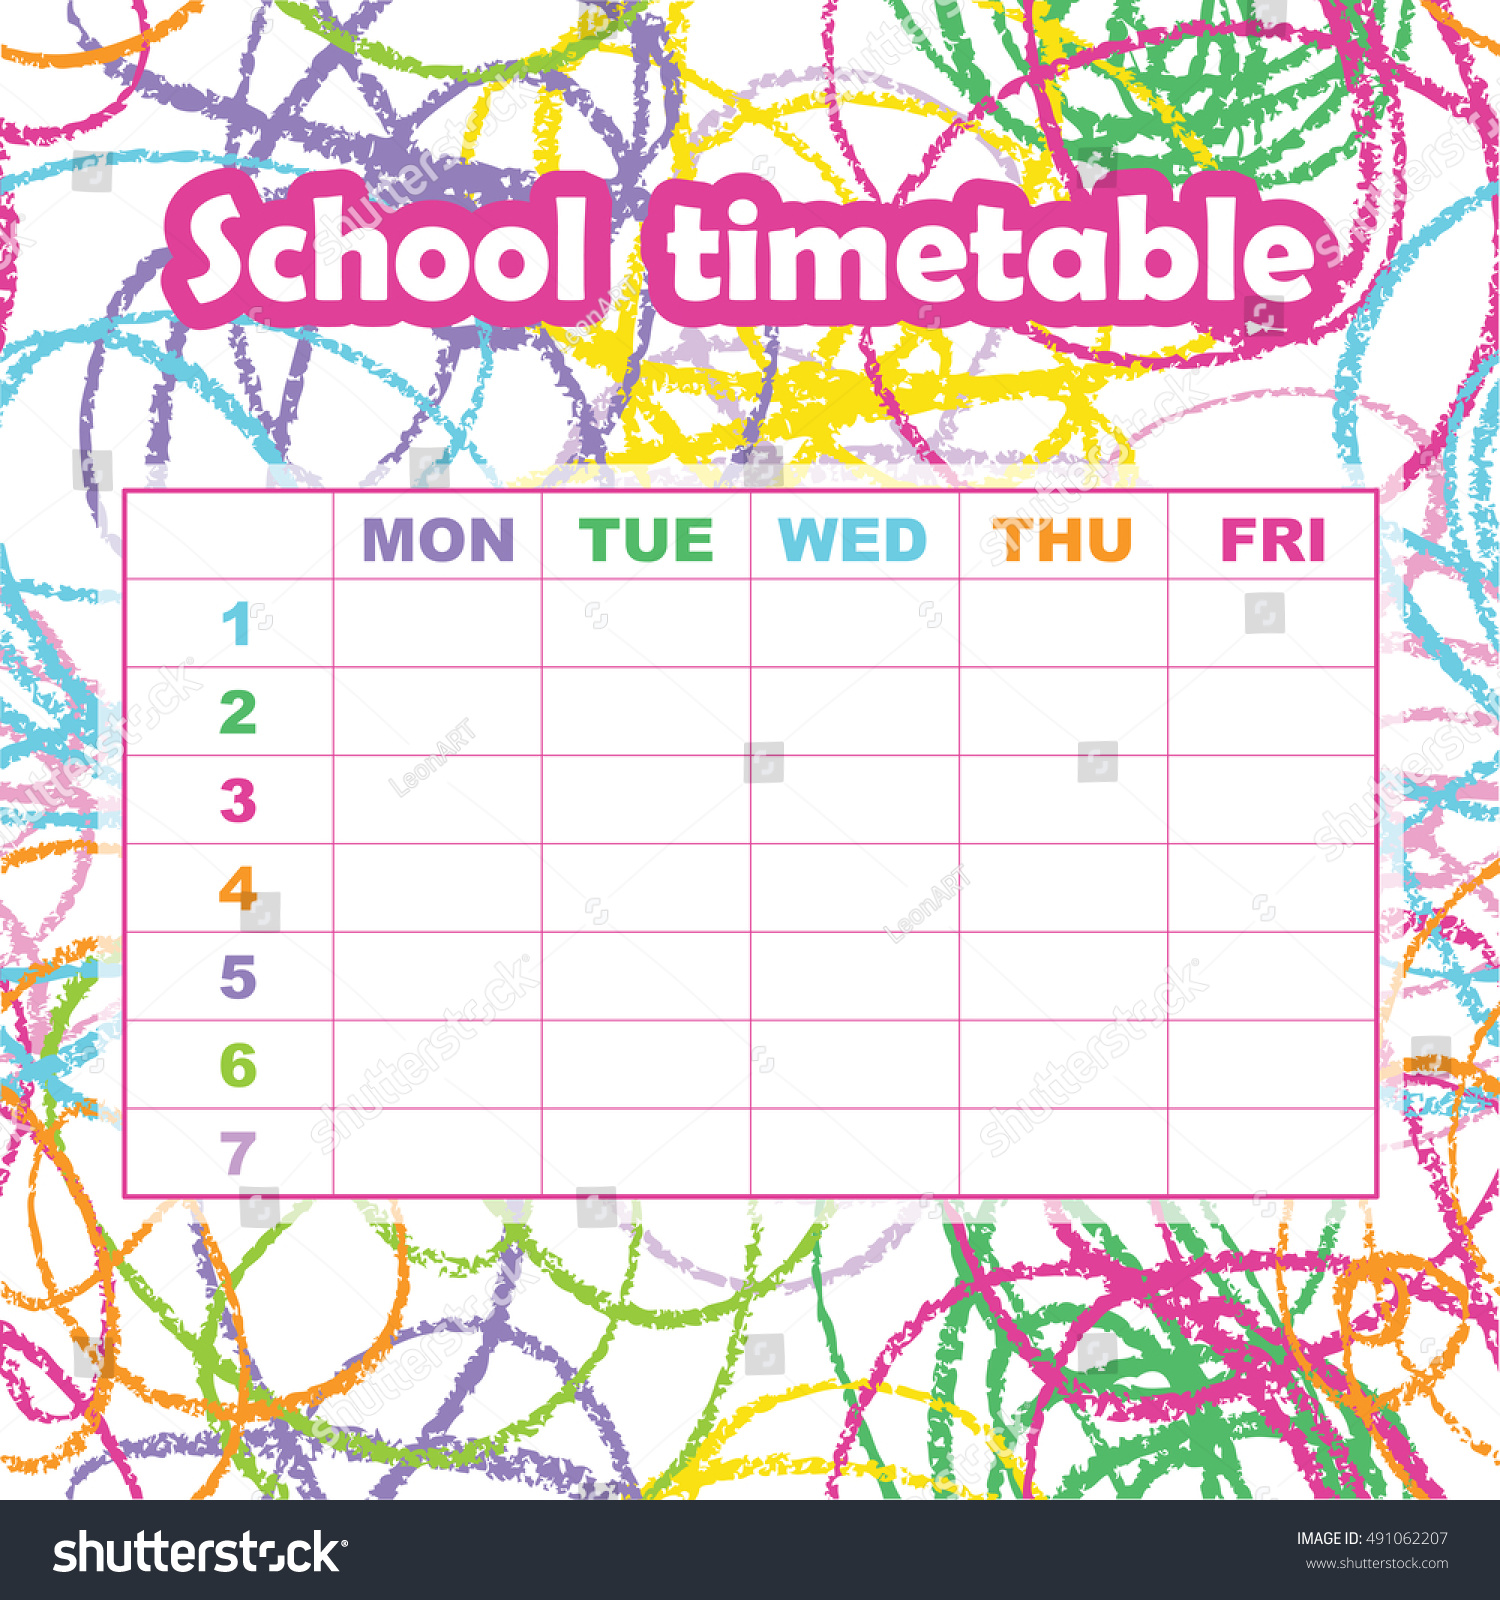 Quotes On School Time Table: School Timetable Template Students Pupils Abstract Stock